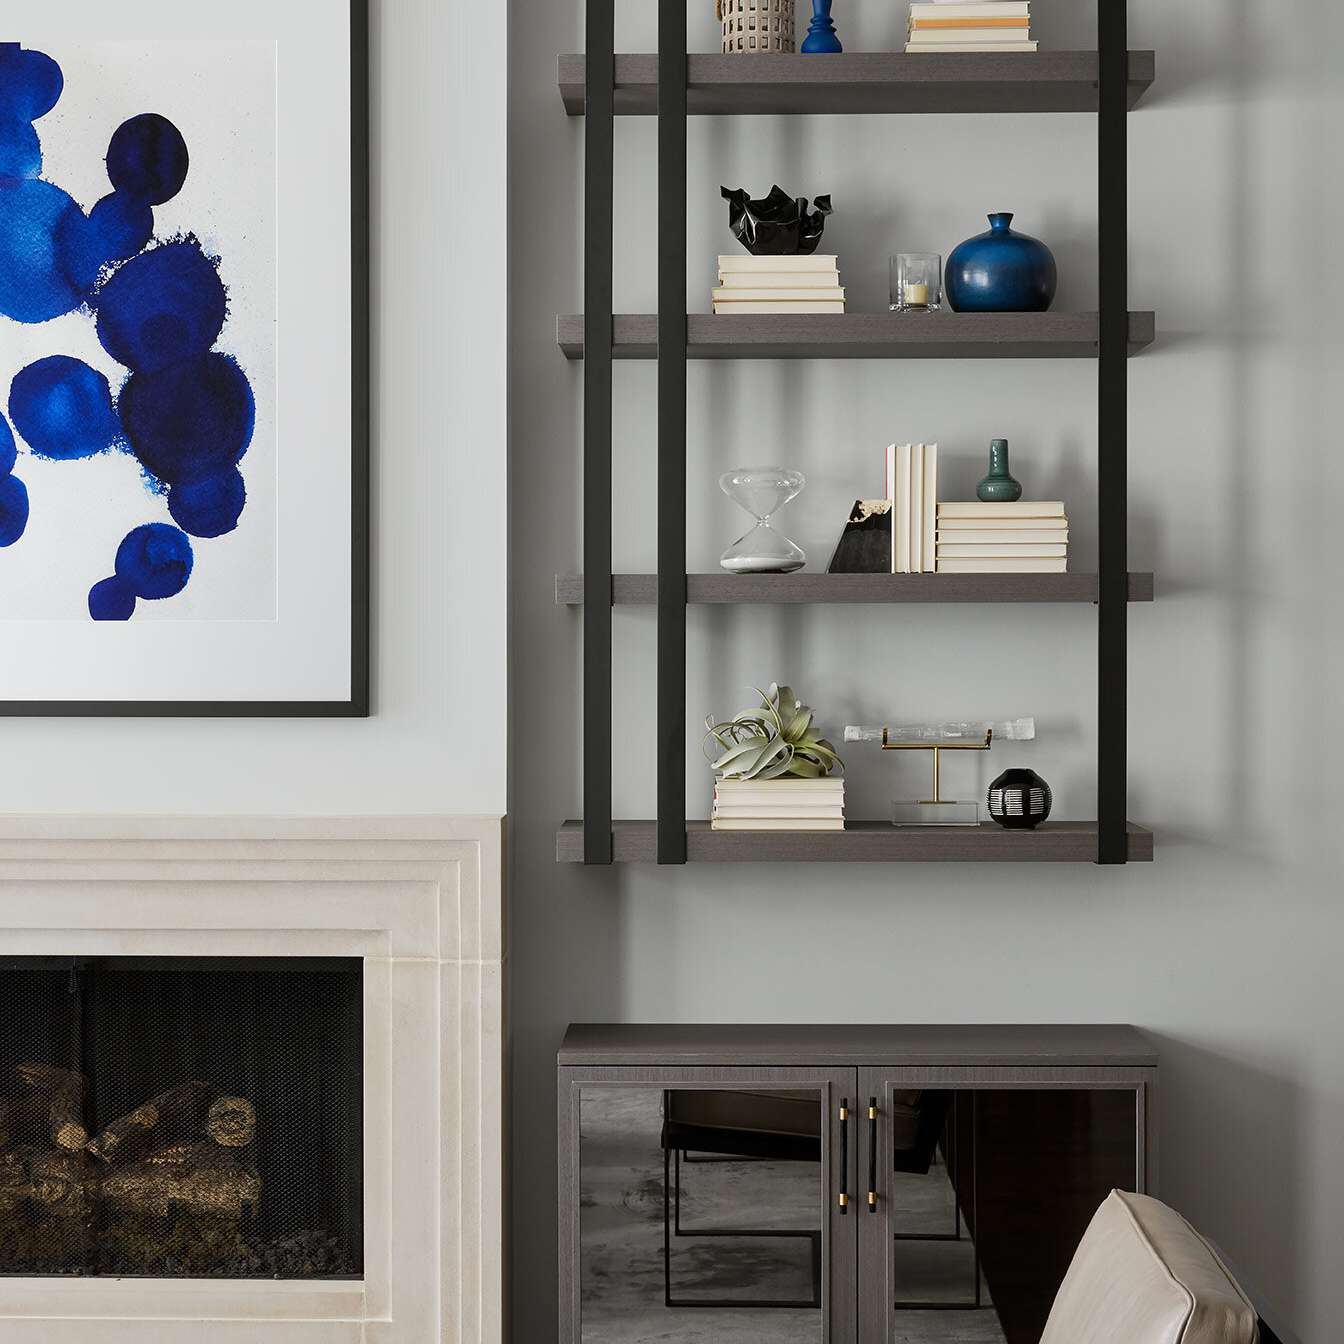 A living room decorated with sleek furniture and industrial pipe shelves